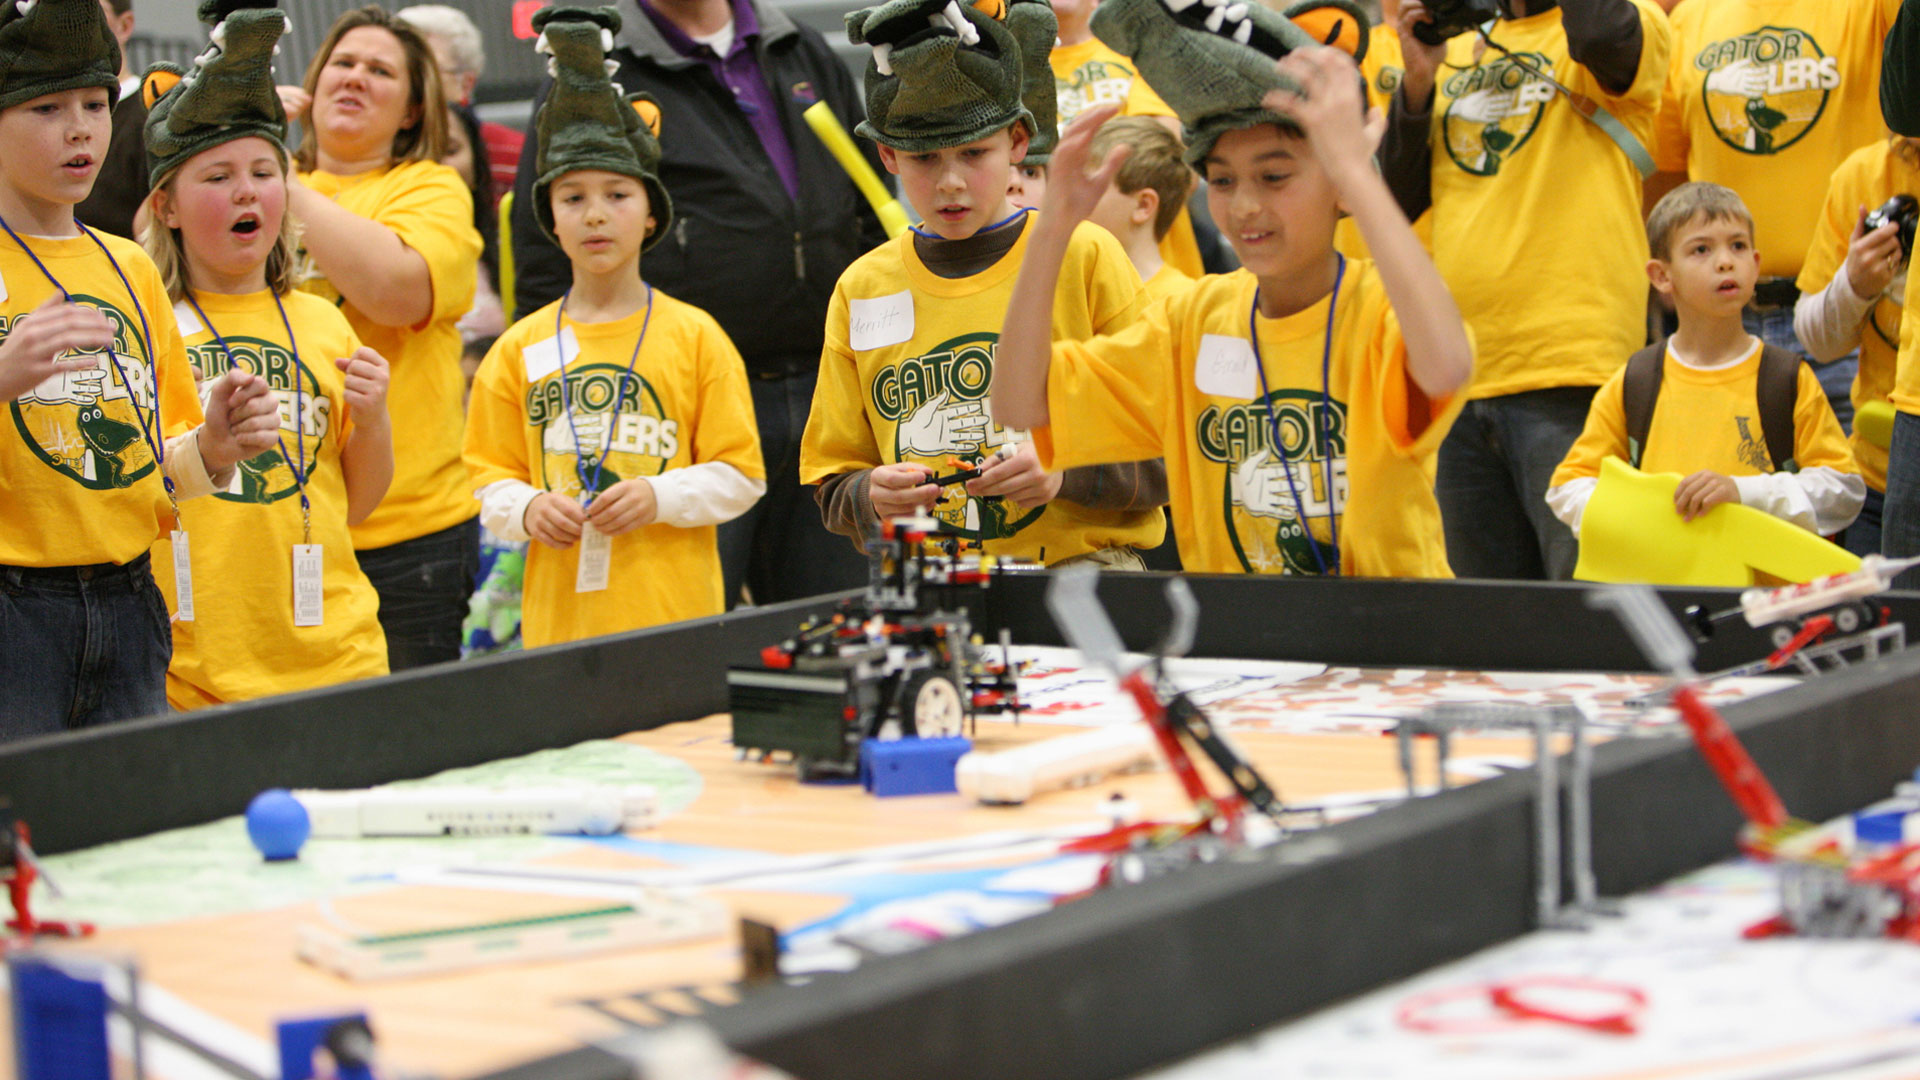 Kids at Robotics competition